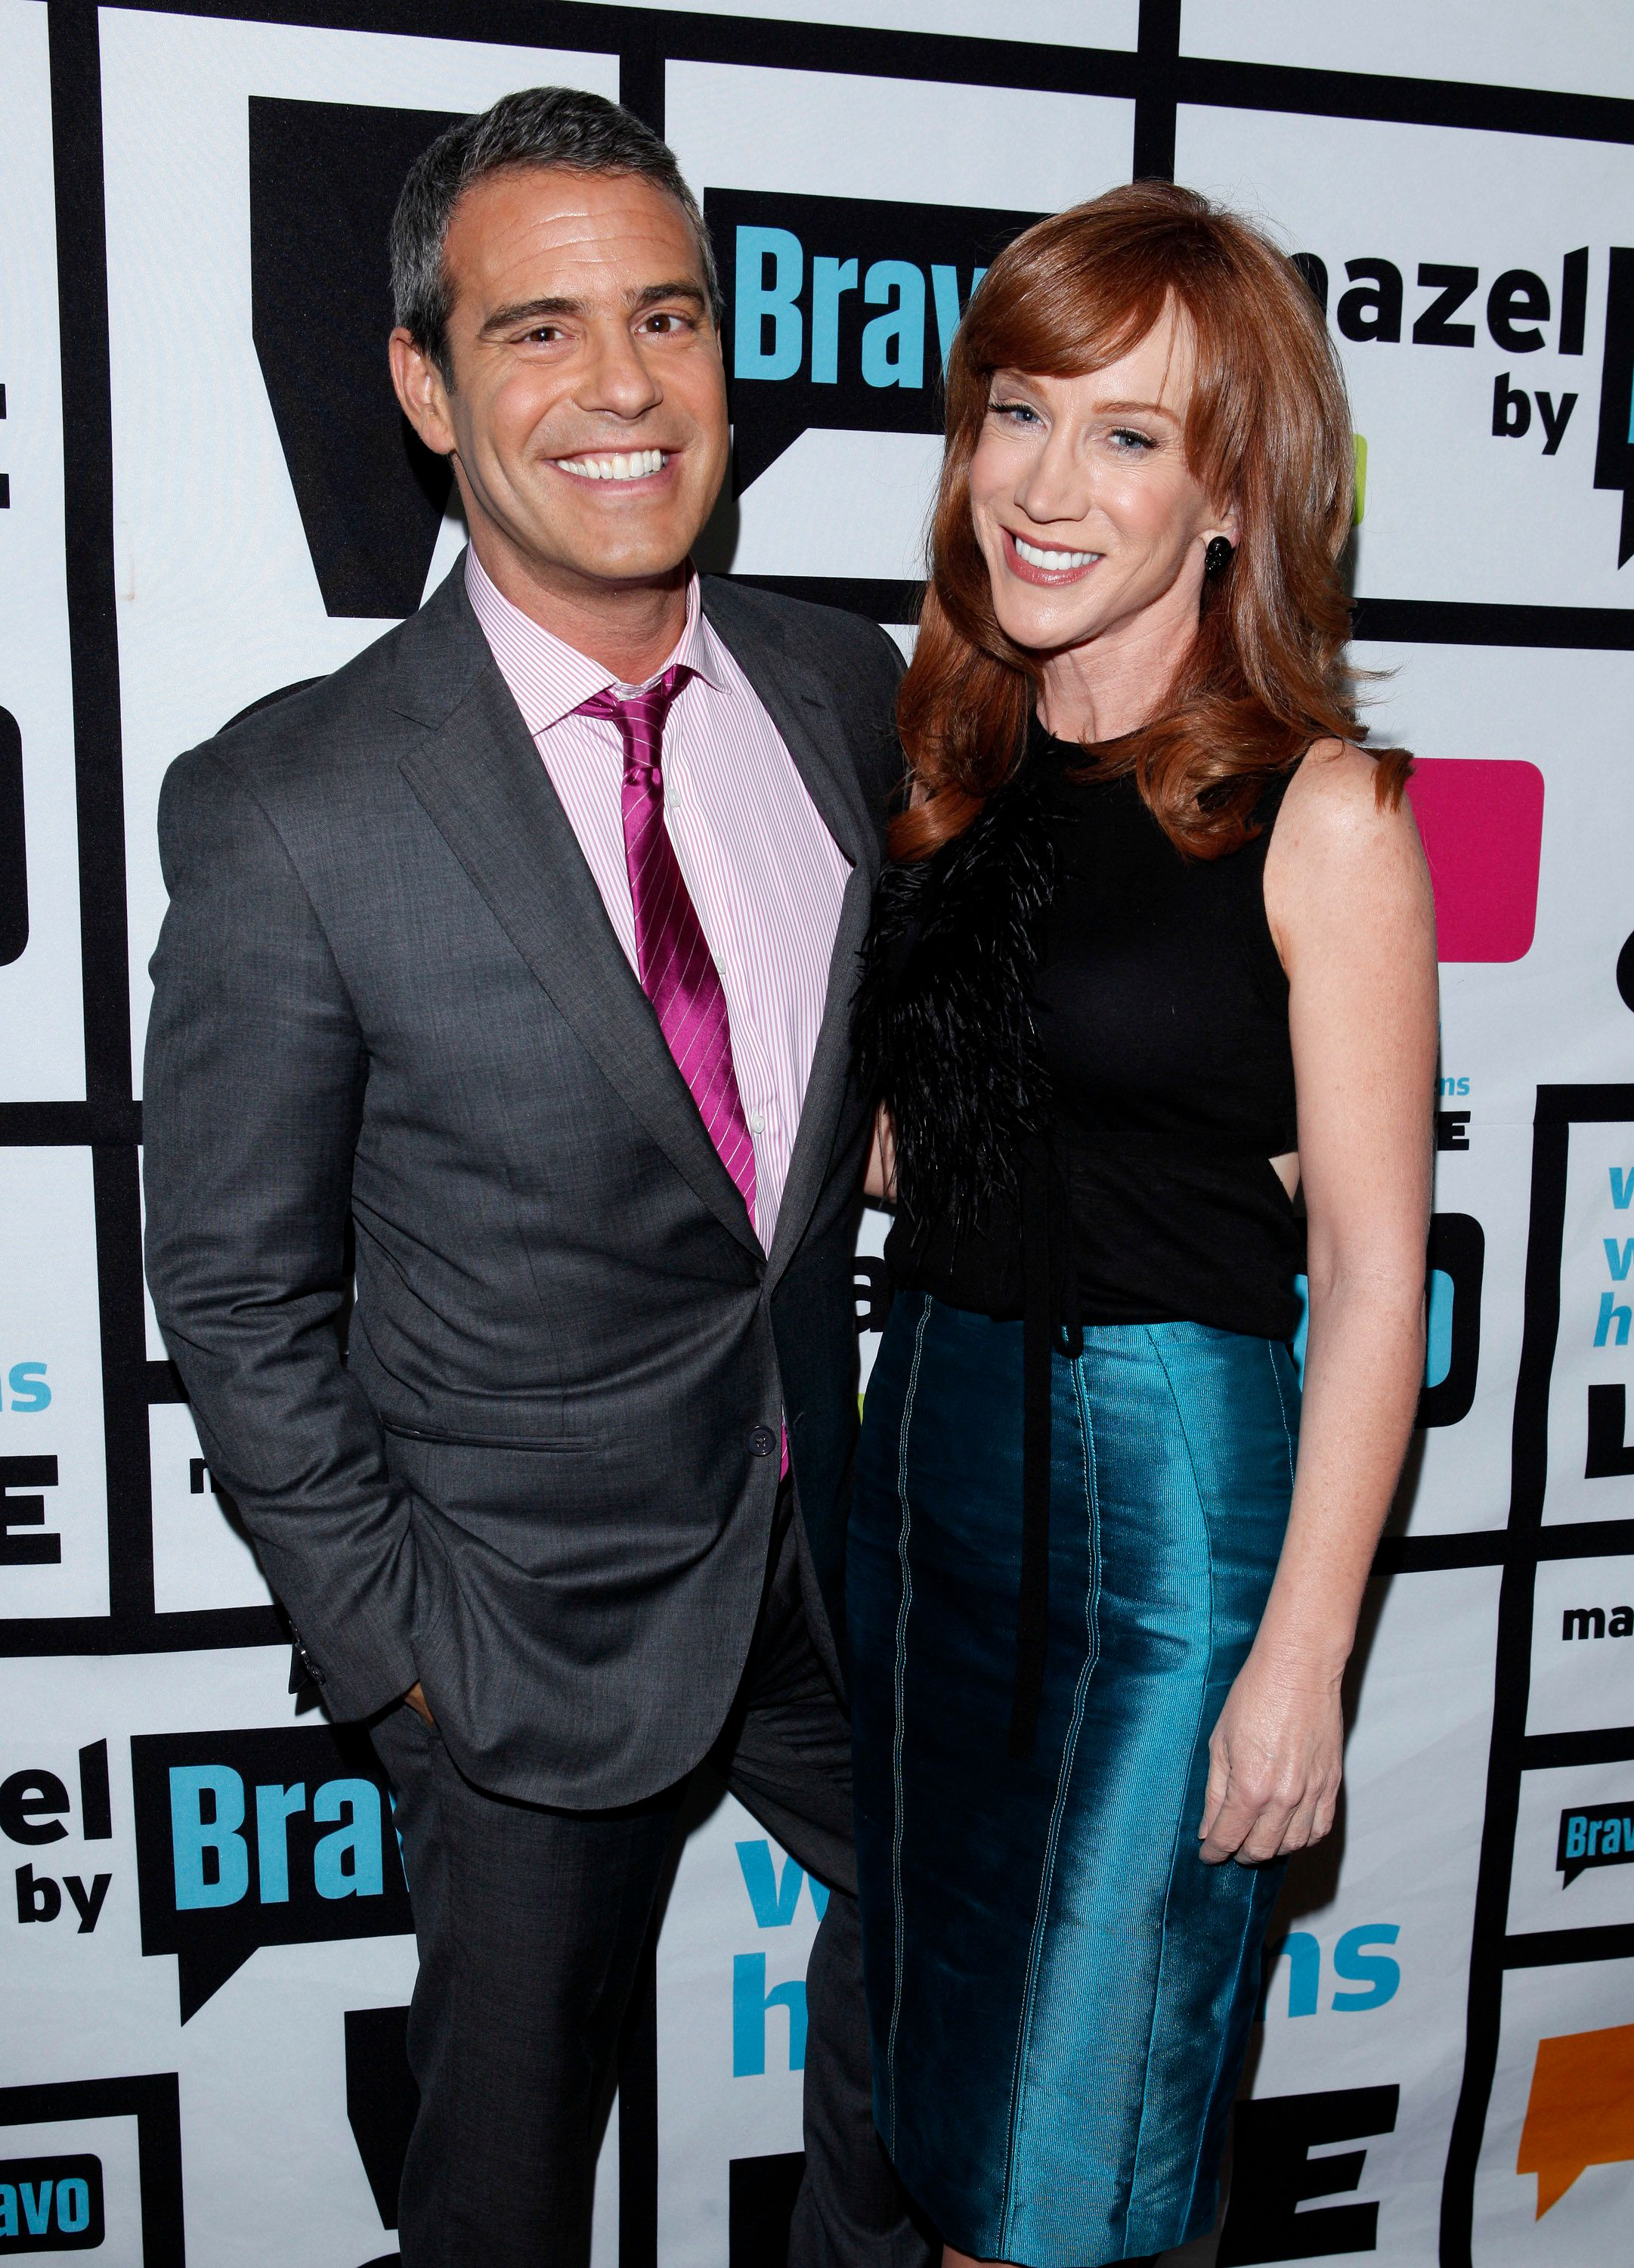 WATCH WHAT HAPPENS LIVE -- Pictured: (l-r) Andy Cohen, Kathy Griffin -- (Photo by: Peter Kramer/Bravo/NBCU Photo Bank via Getty Images)